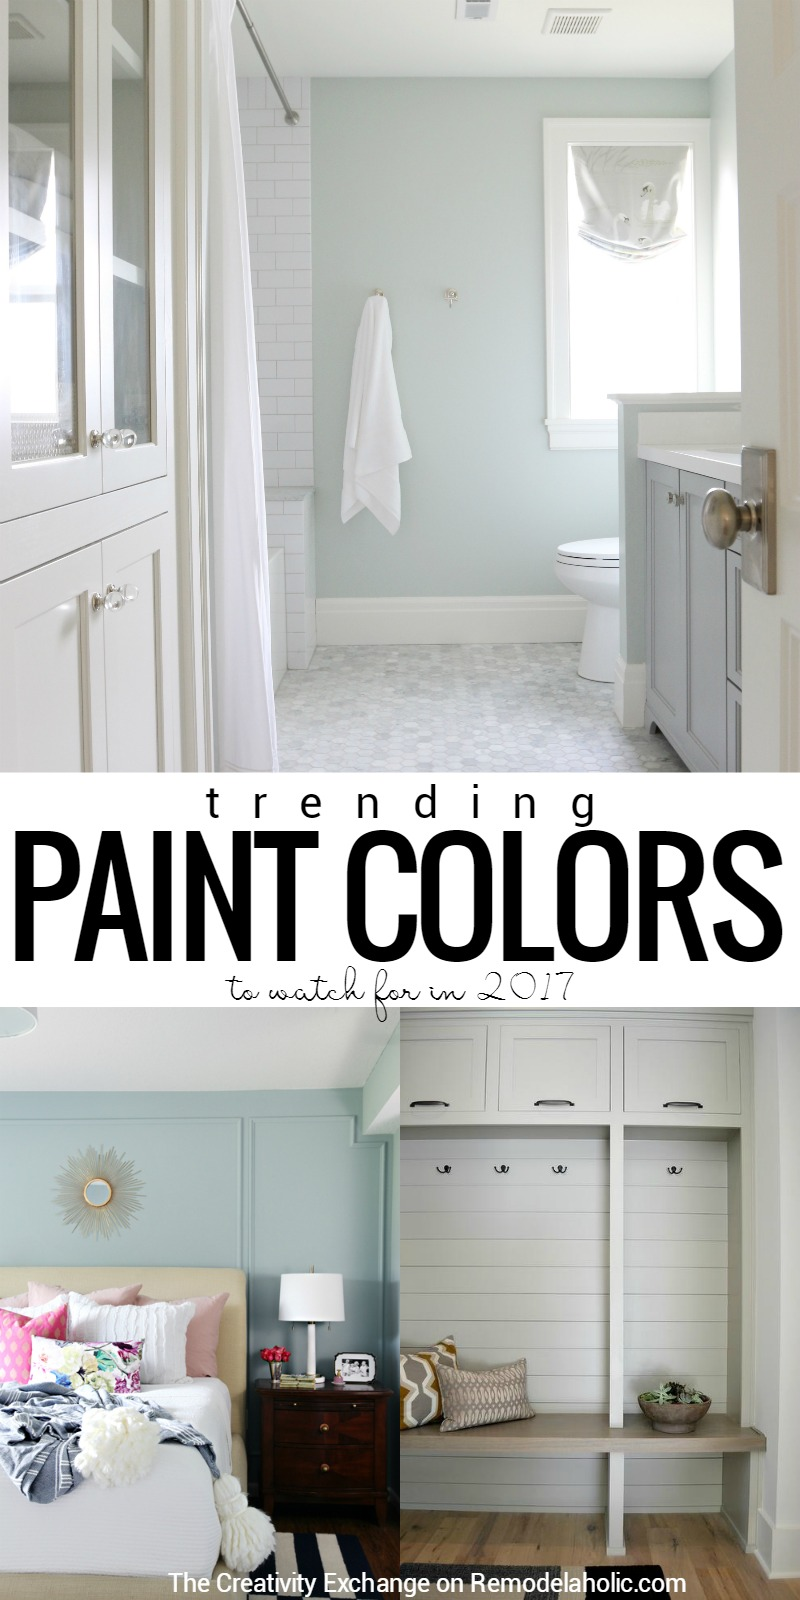 Remodelaholic paint color trends for 2017 Popular furniture colors 2017